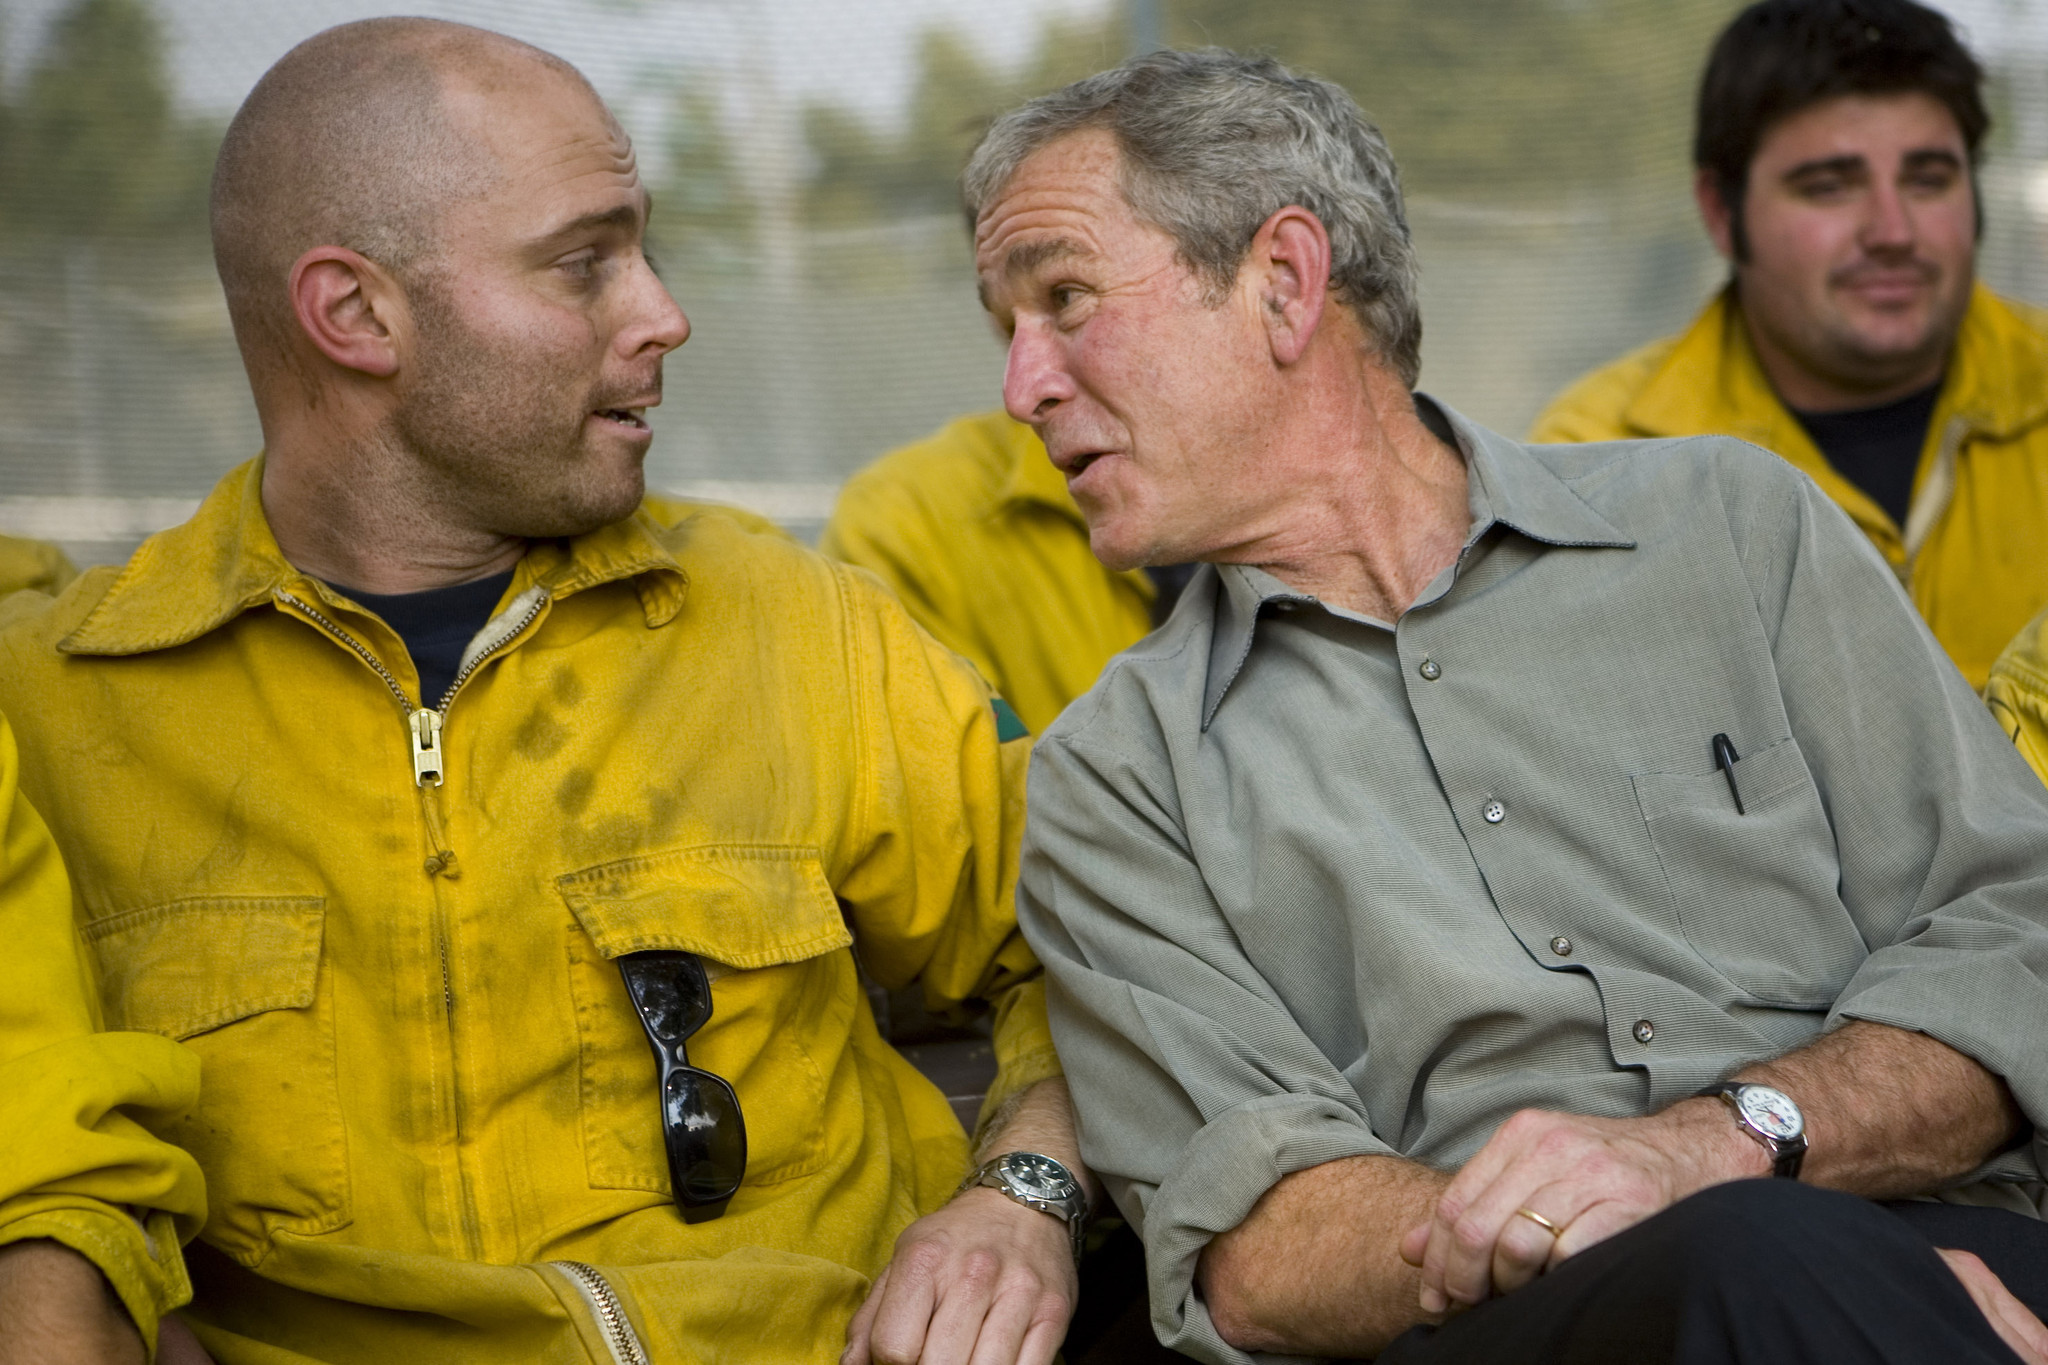 President George W. Bush jokes with a fire crew member after touring the Rancho Bernardo area in San Diego in October 2007.